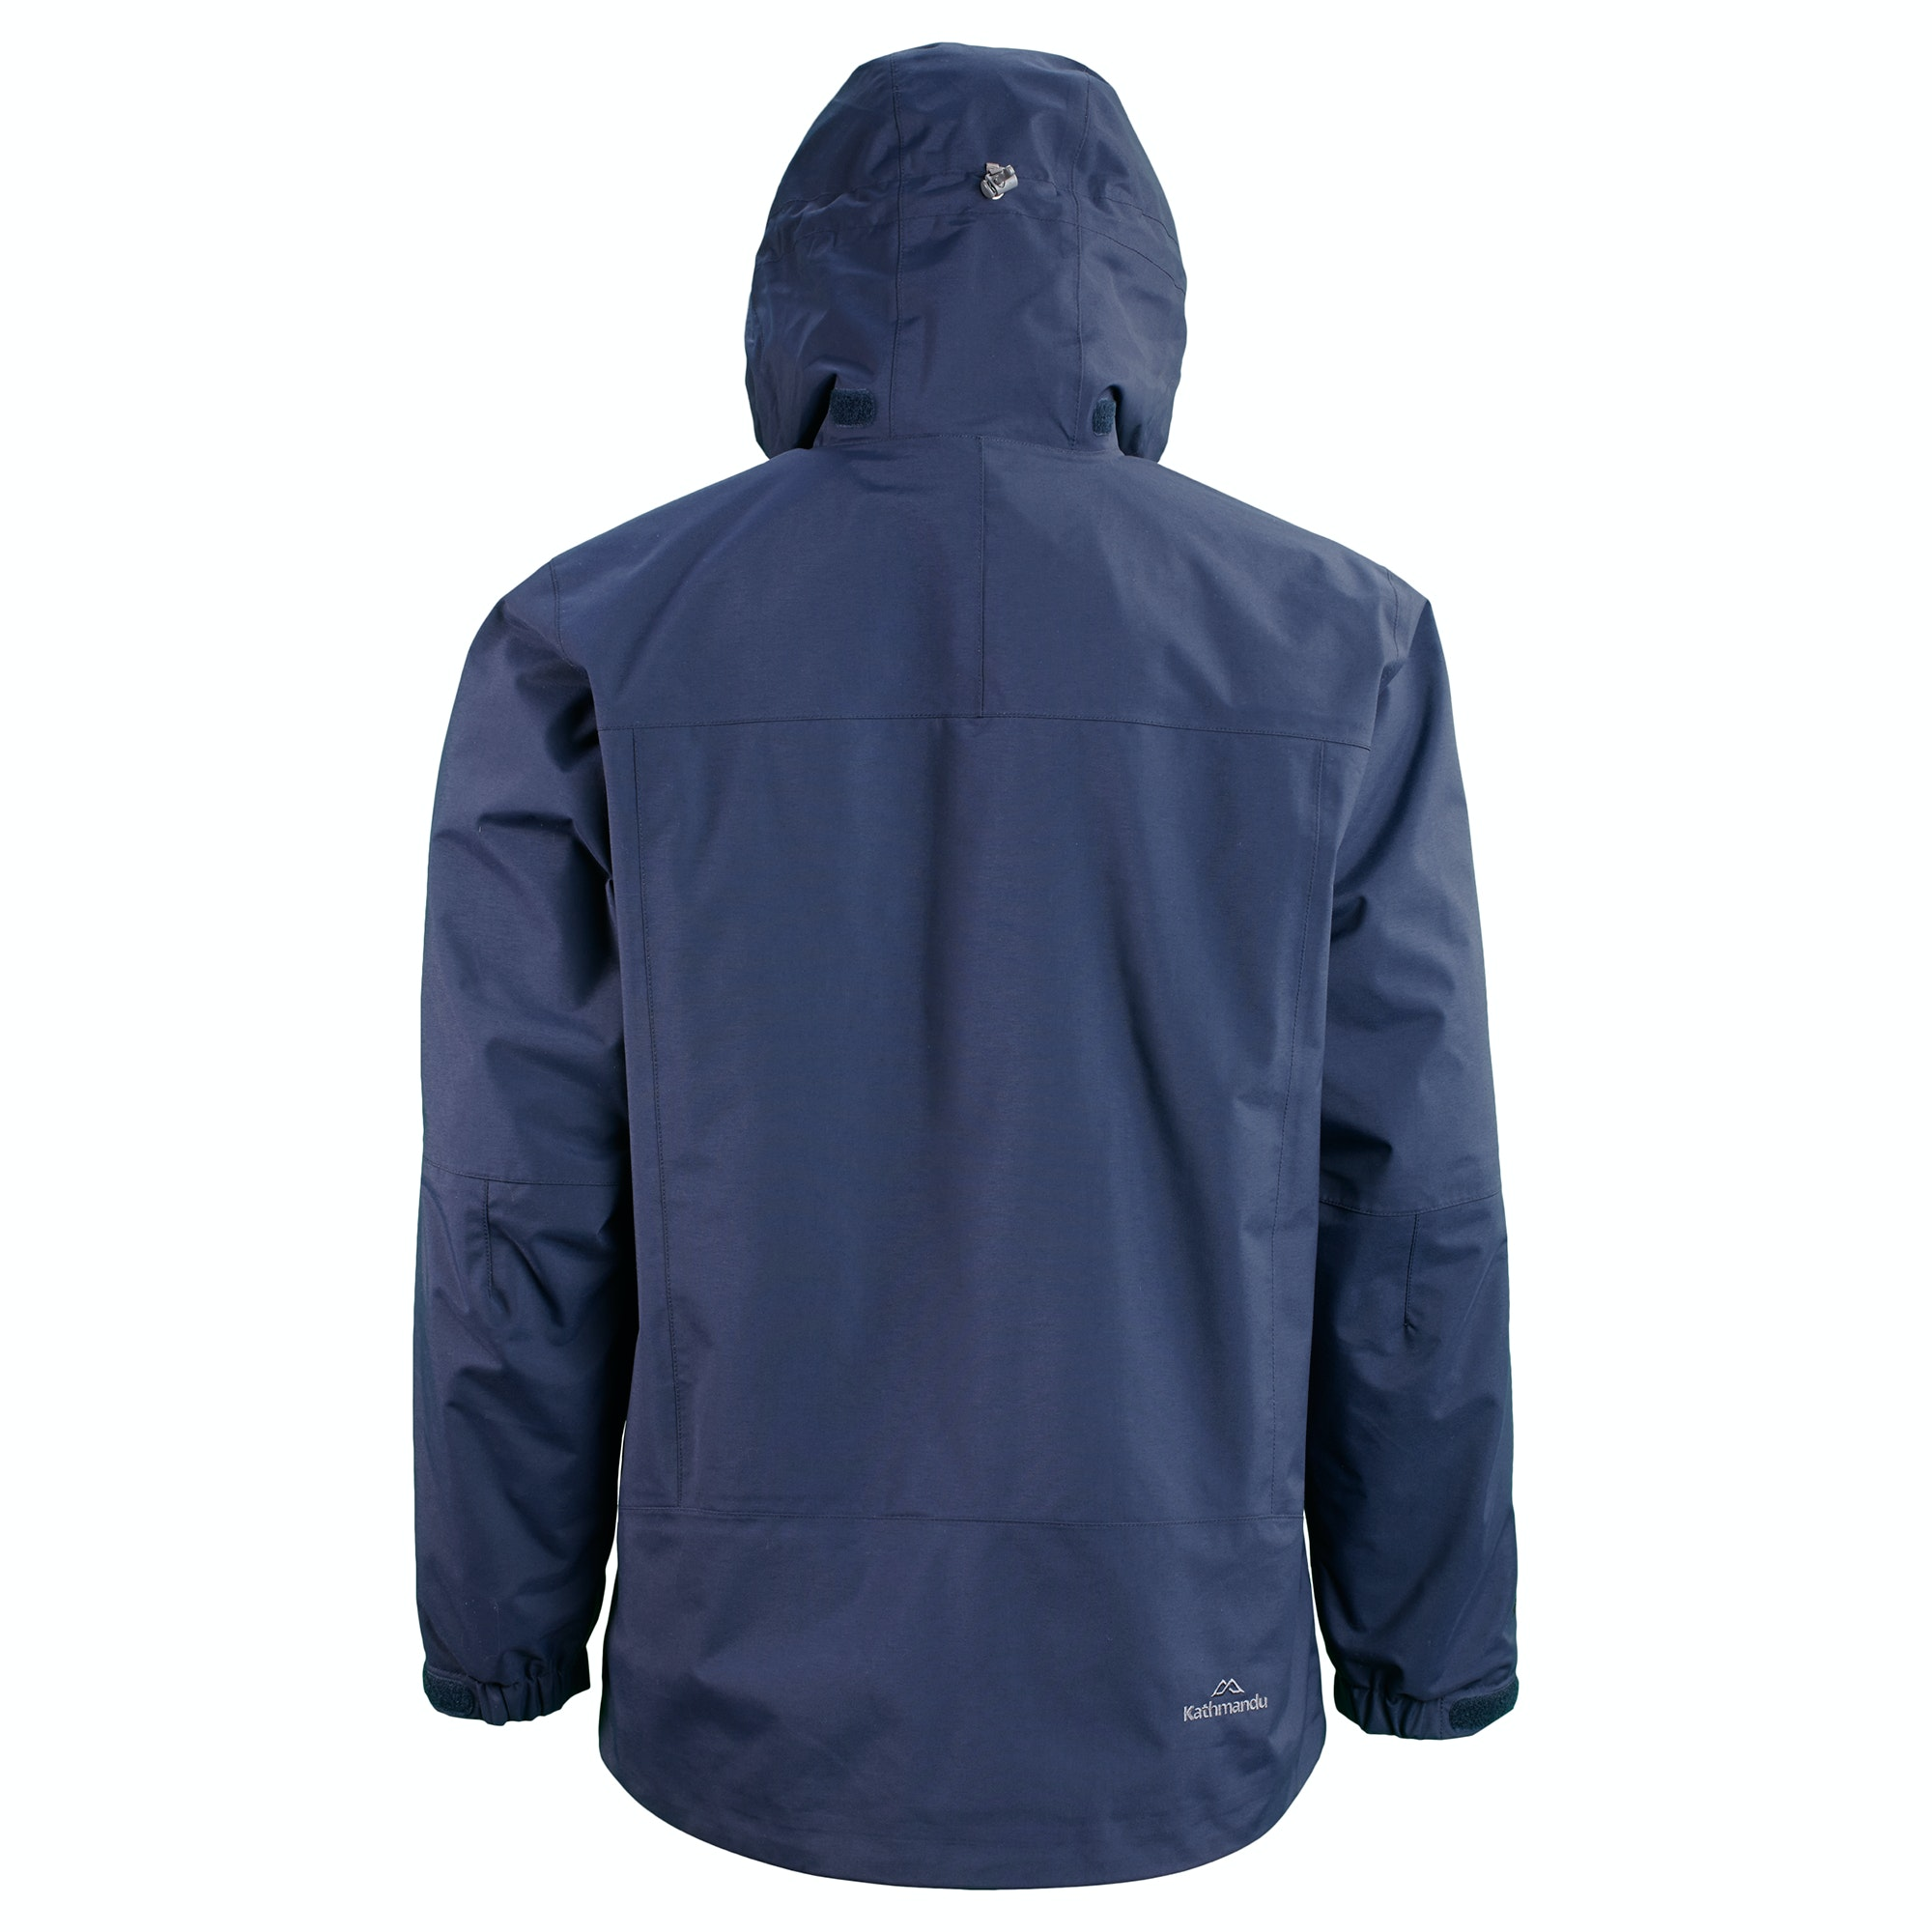 Isograd 3 in 1 Waterproof Jacket Men - Dark Blue